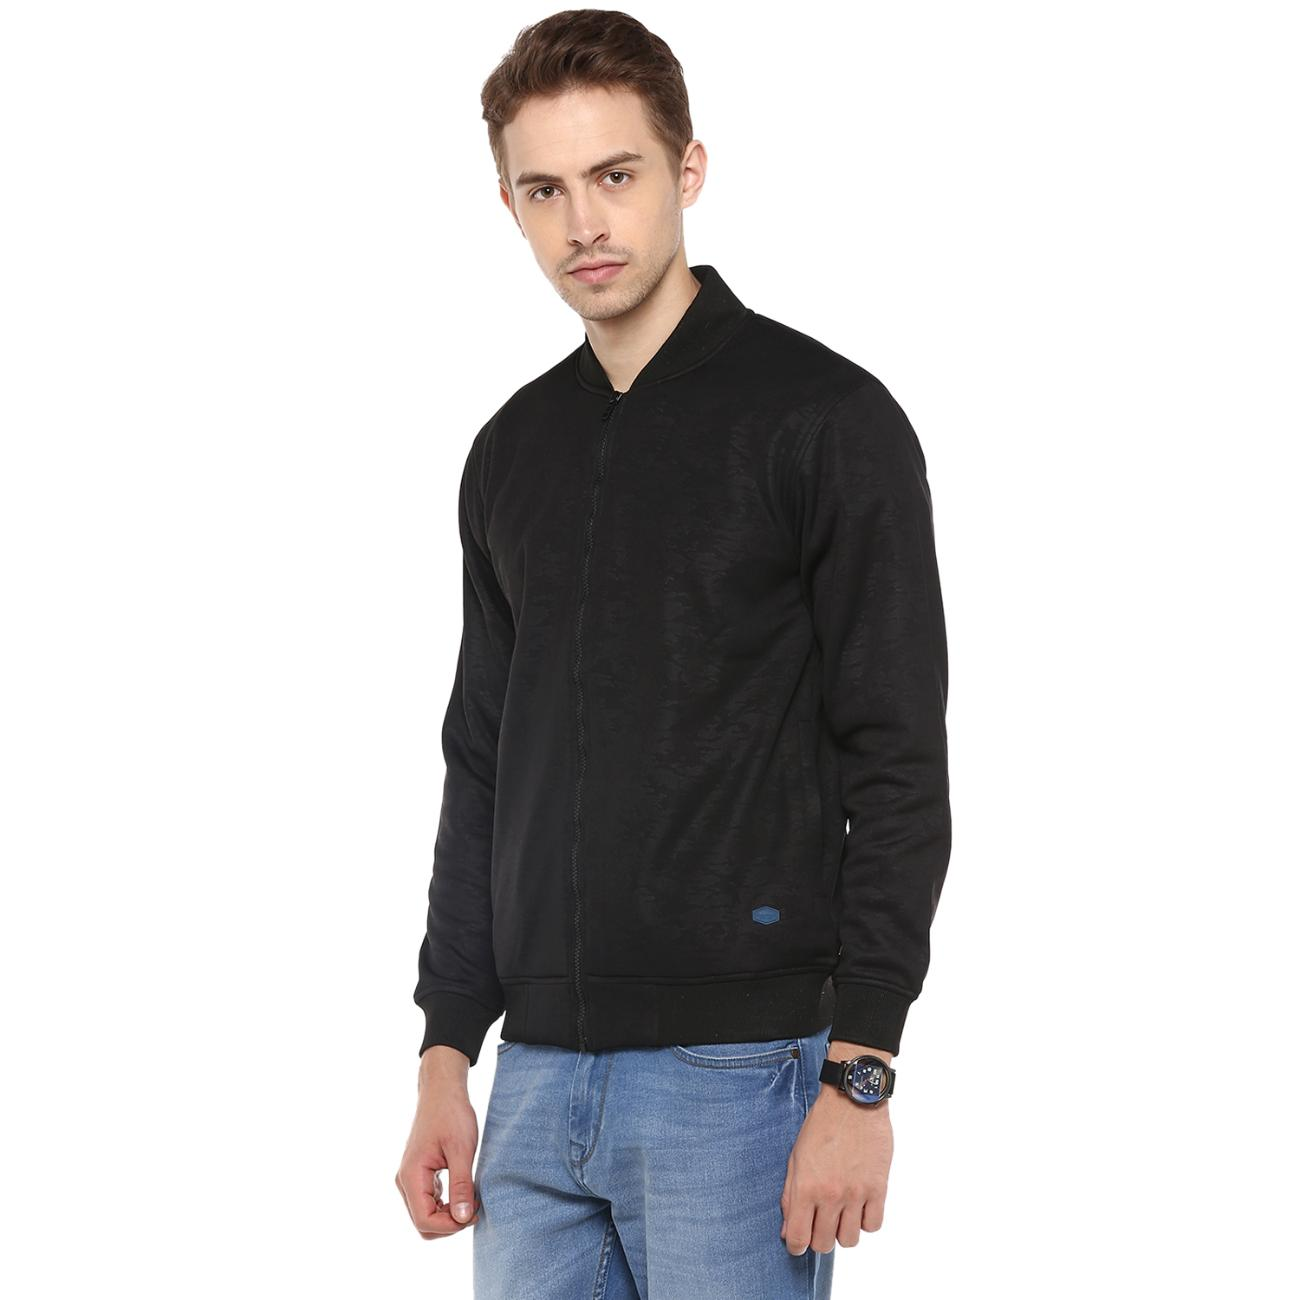 Red Chief's Black Zipper Bomber Jacket